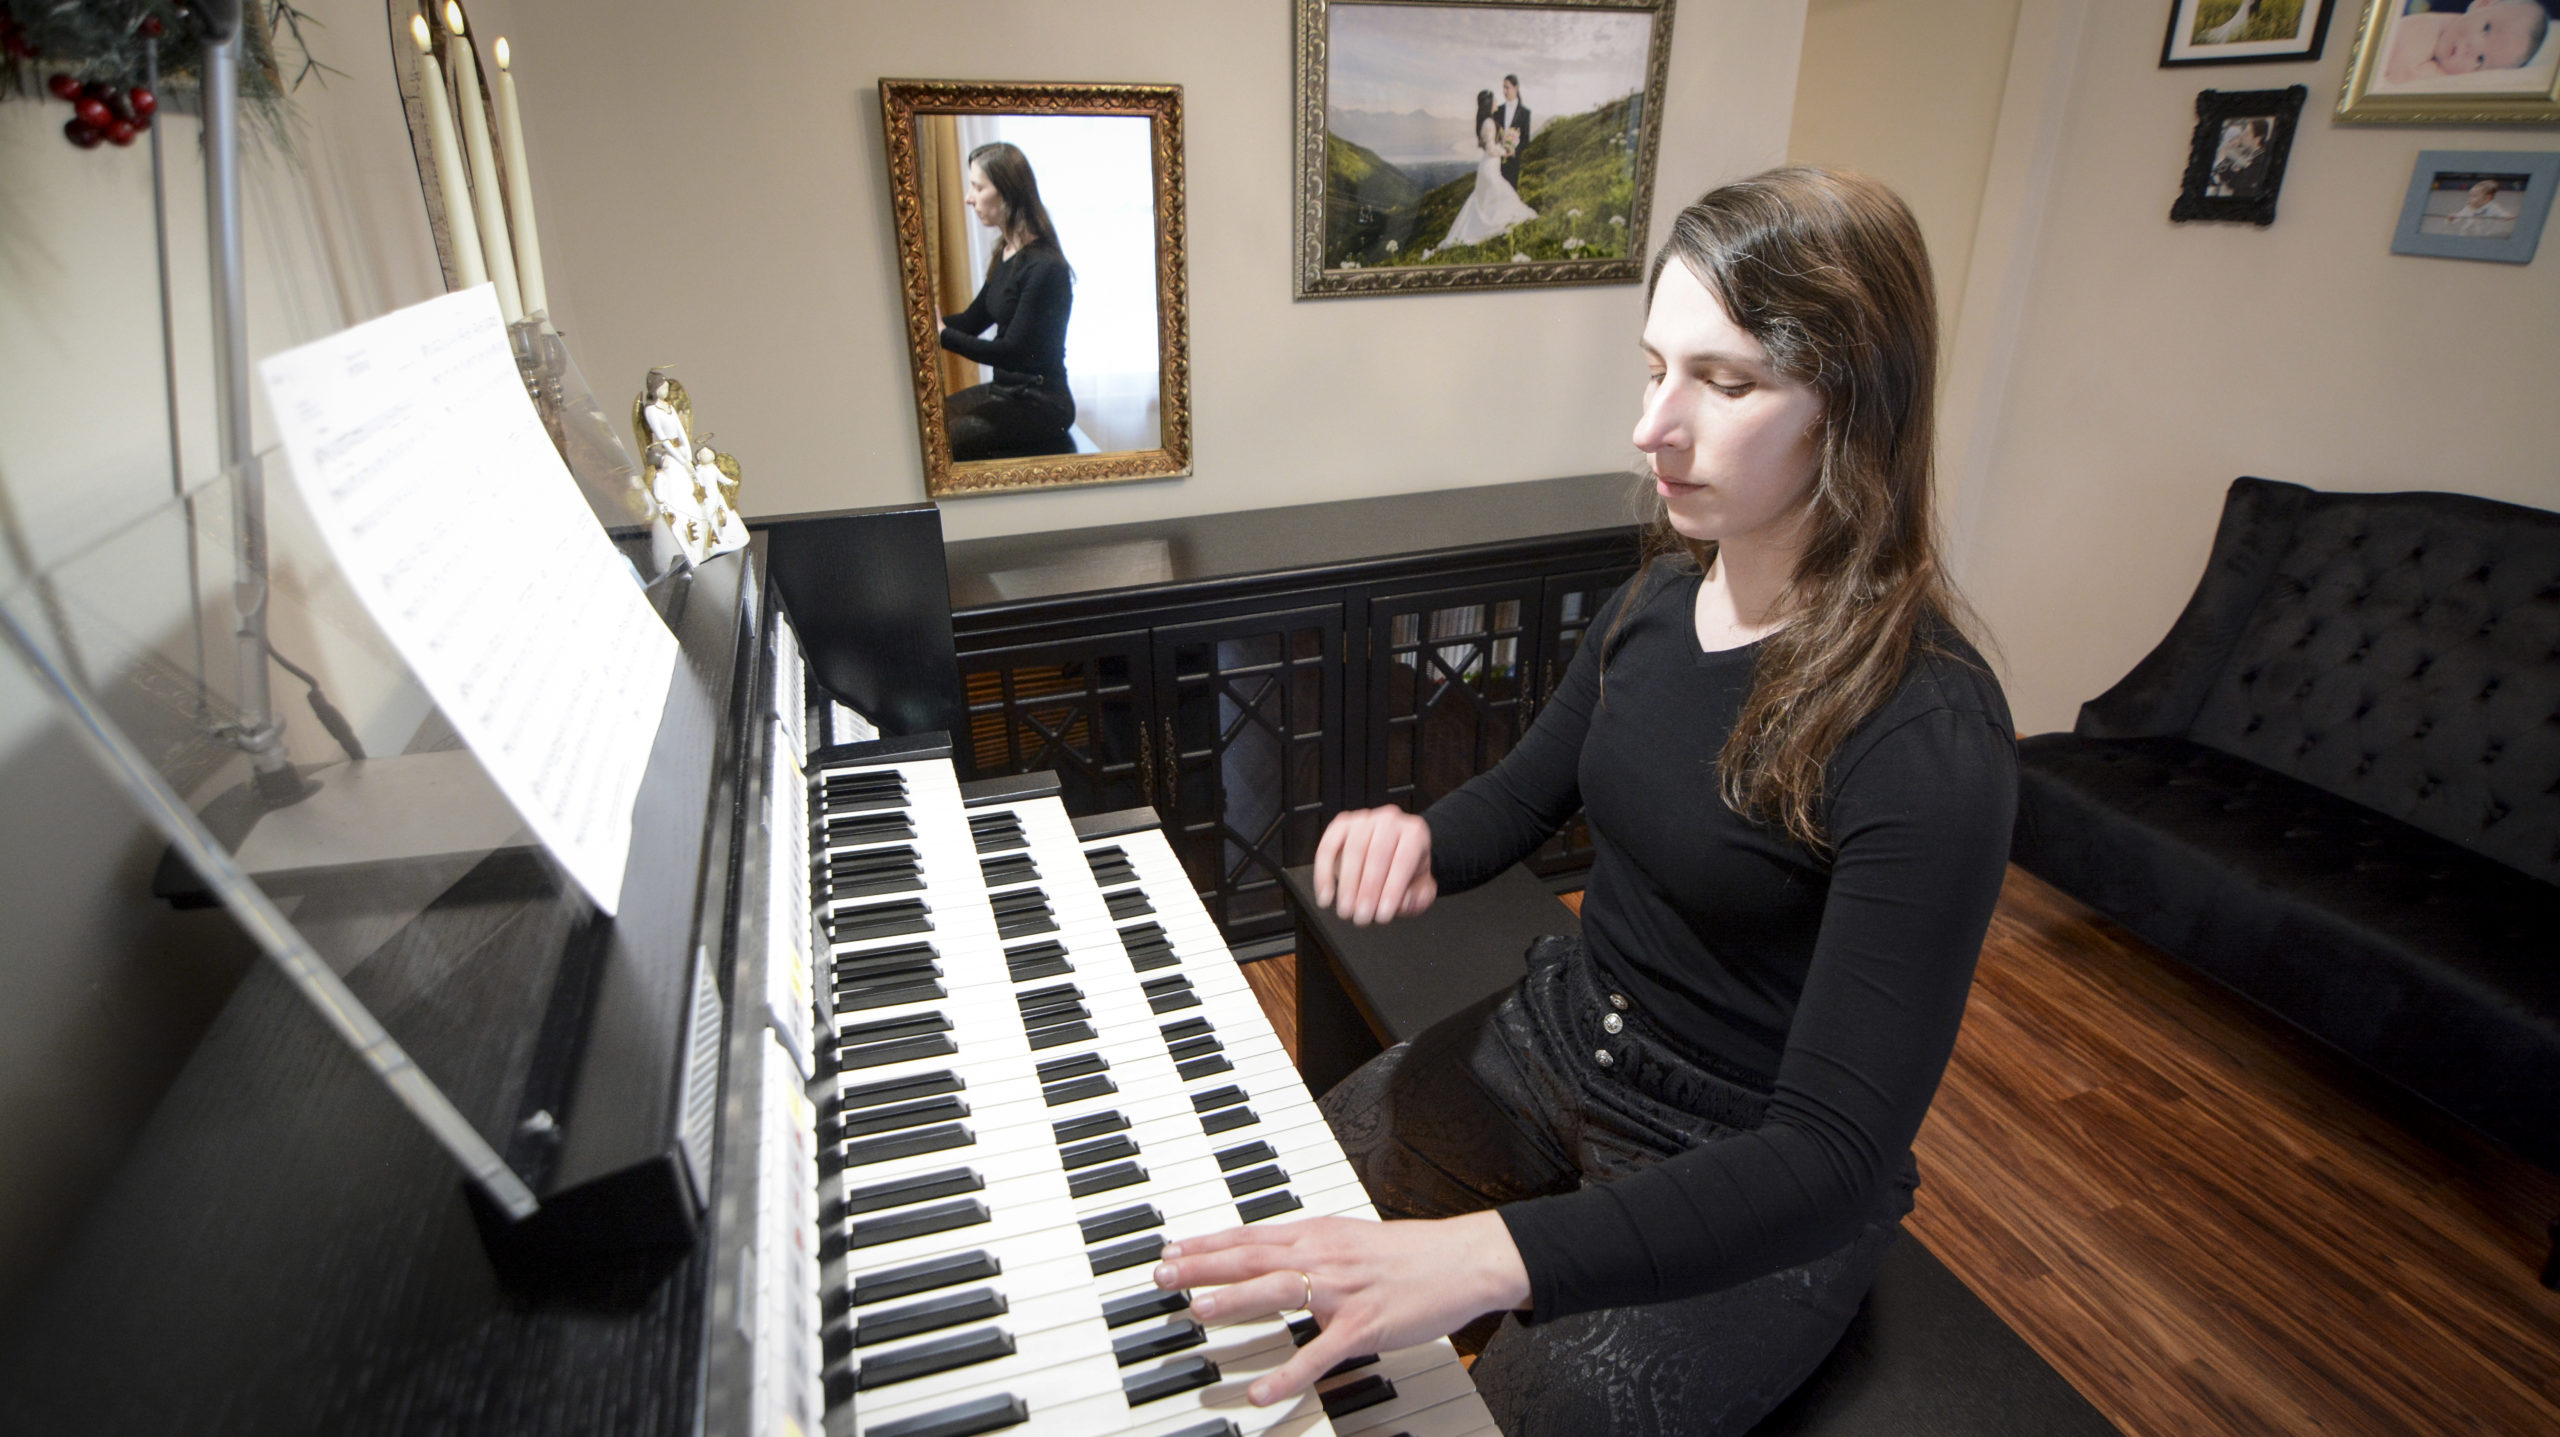 Trans organist and composer Dr. Kris Rizzotto at their home organ, transgender classical musician